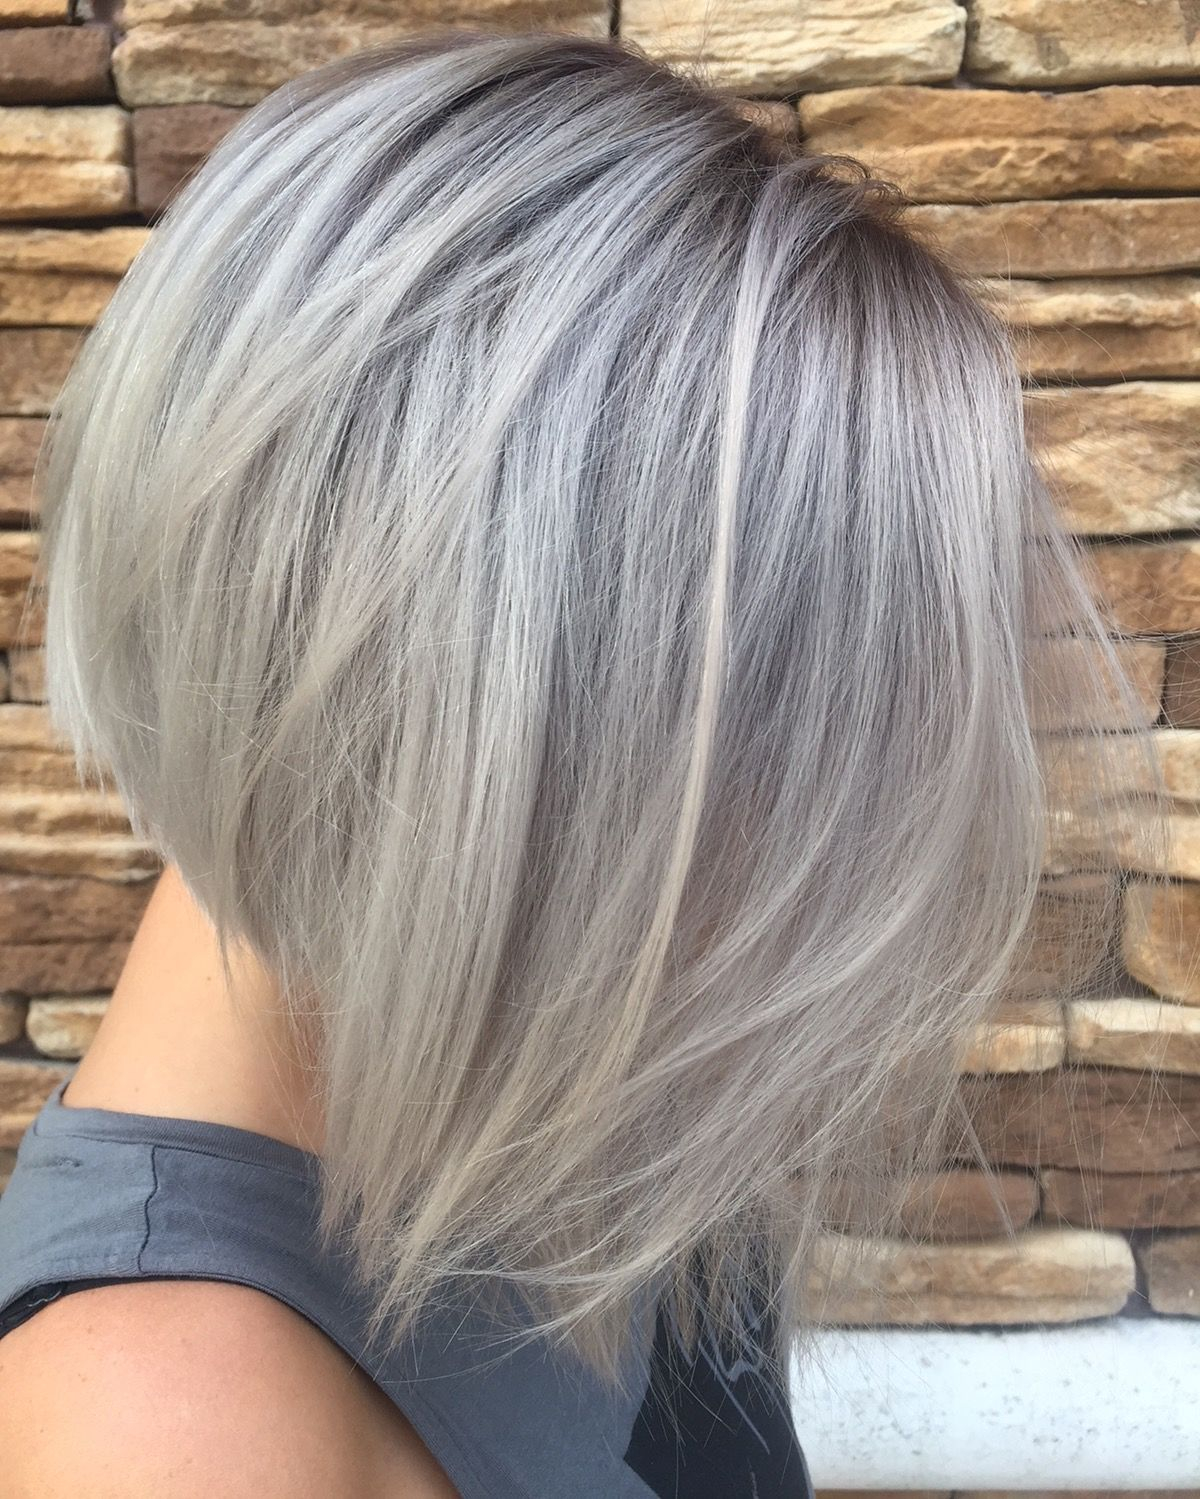 Greyhair Grayhair Shadowroot Bob Aline Shorthair